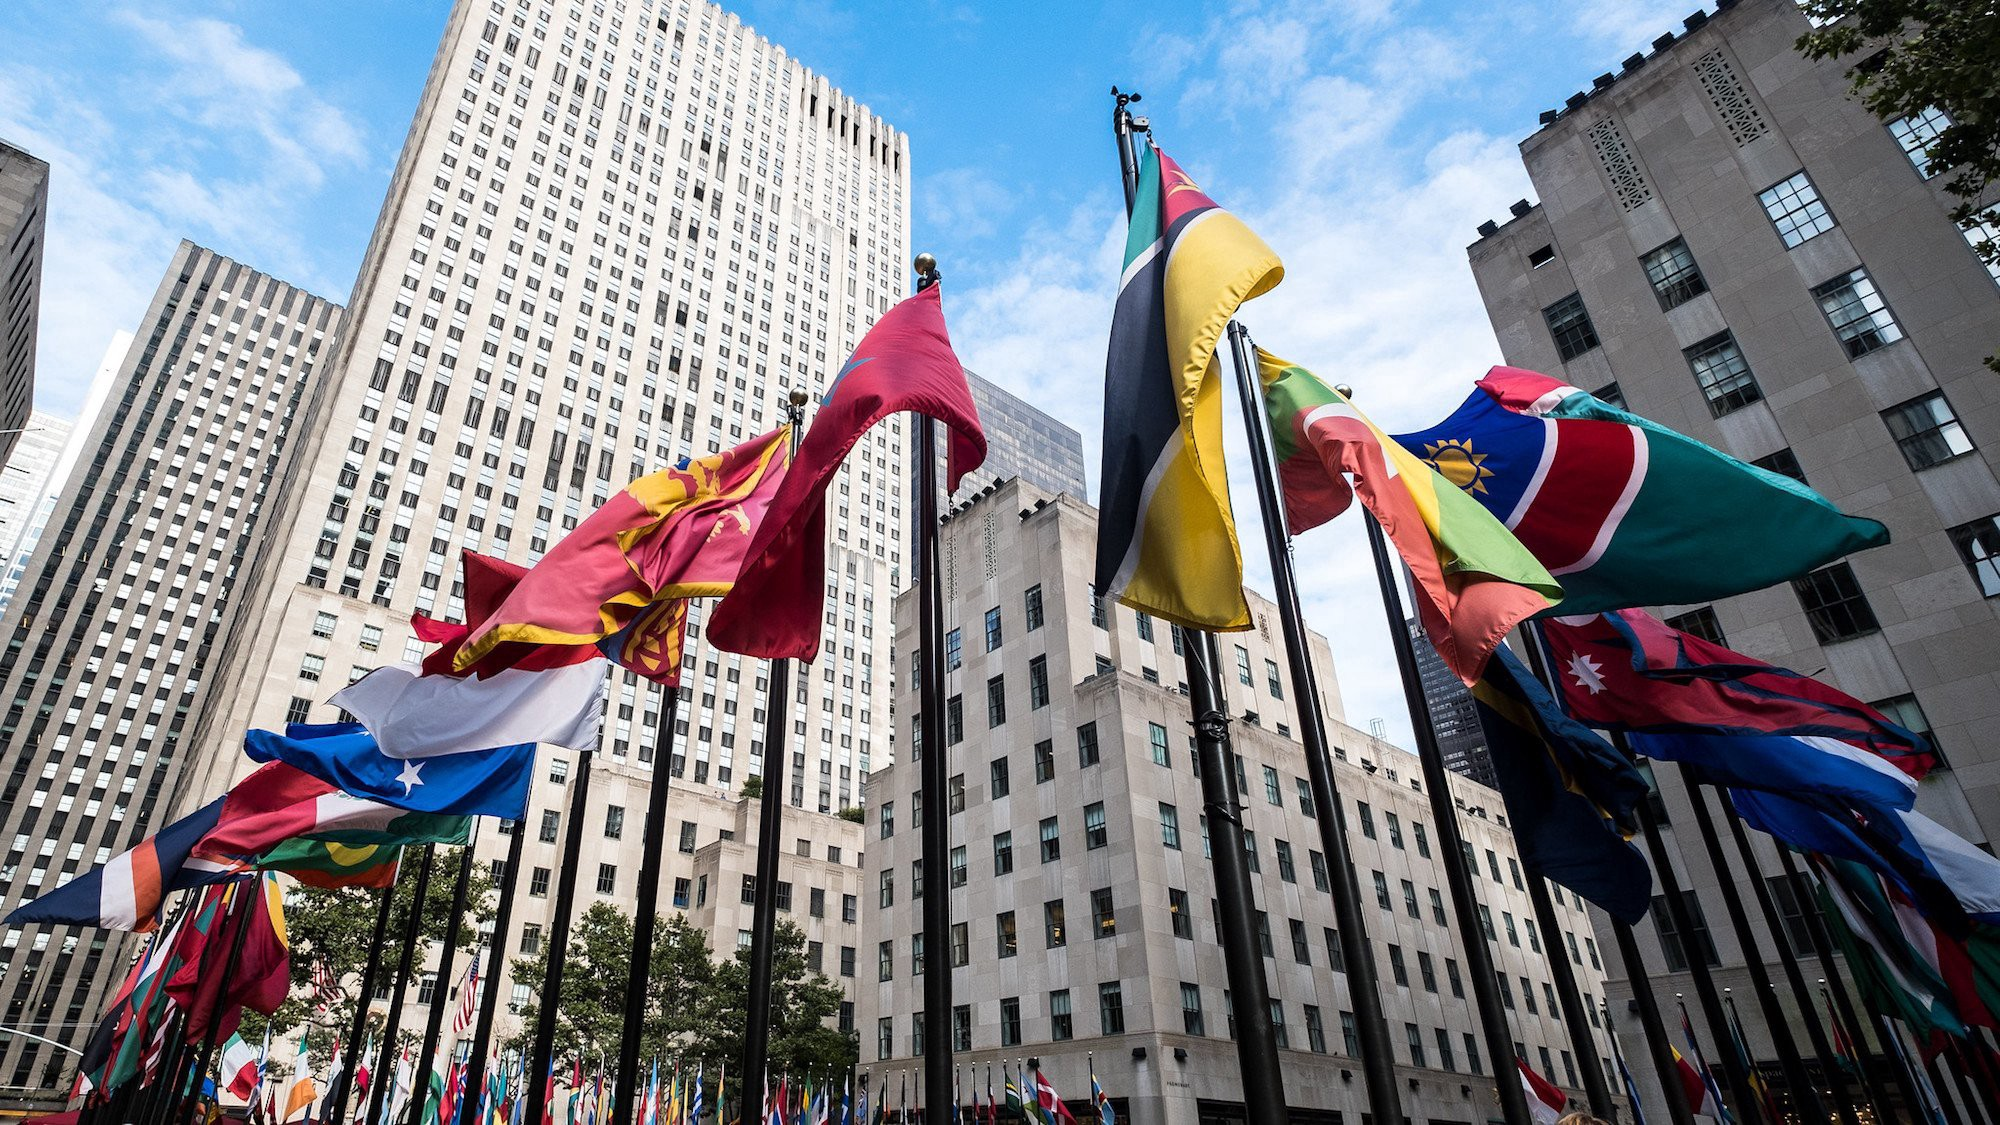 Picture from Rockefeller center https://www.6sqft.com/new-yorkers-invited-to-design-iconic-rockefeller-center-flags/